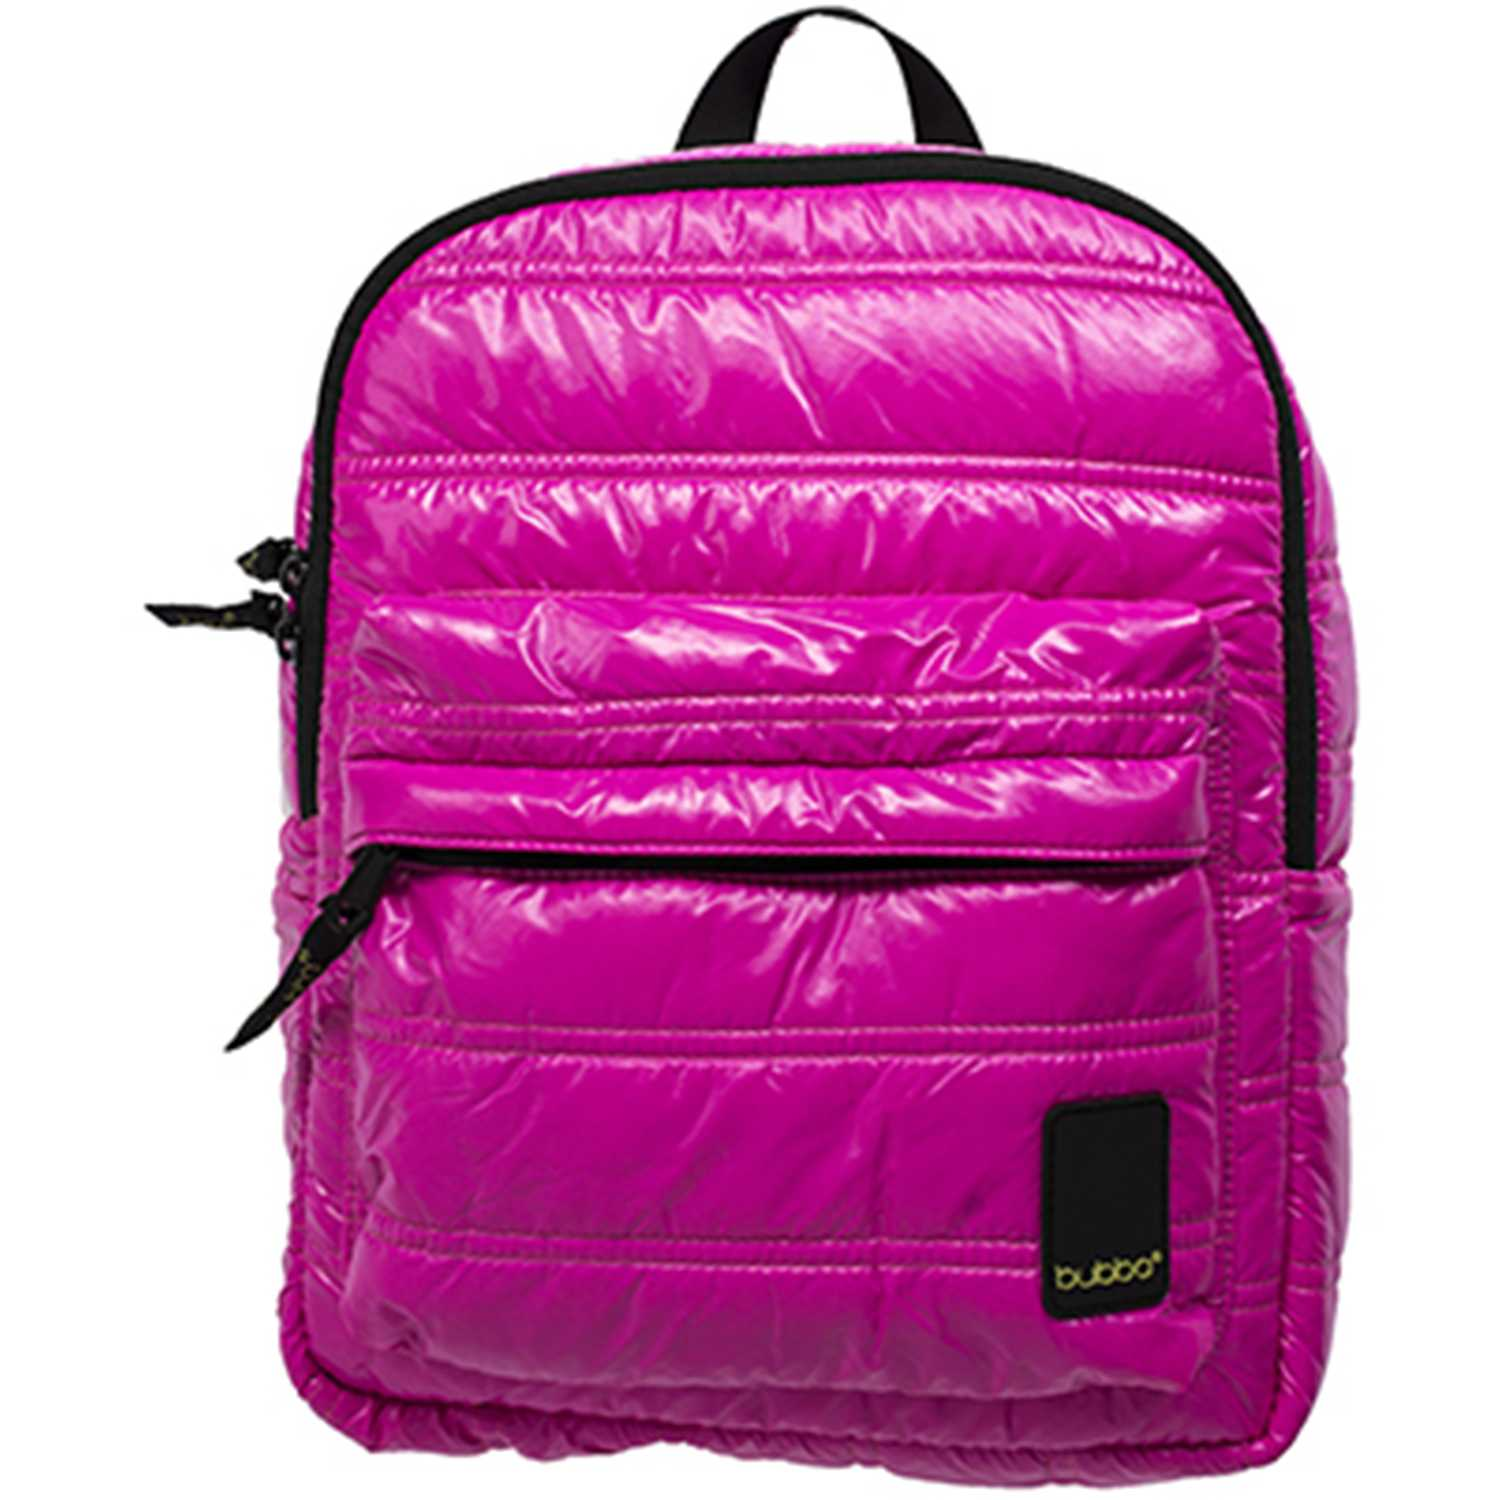 BUBBA Mochila Bubba Classic MINI Fucsia Mochilas Multipropósitos